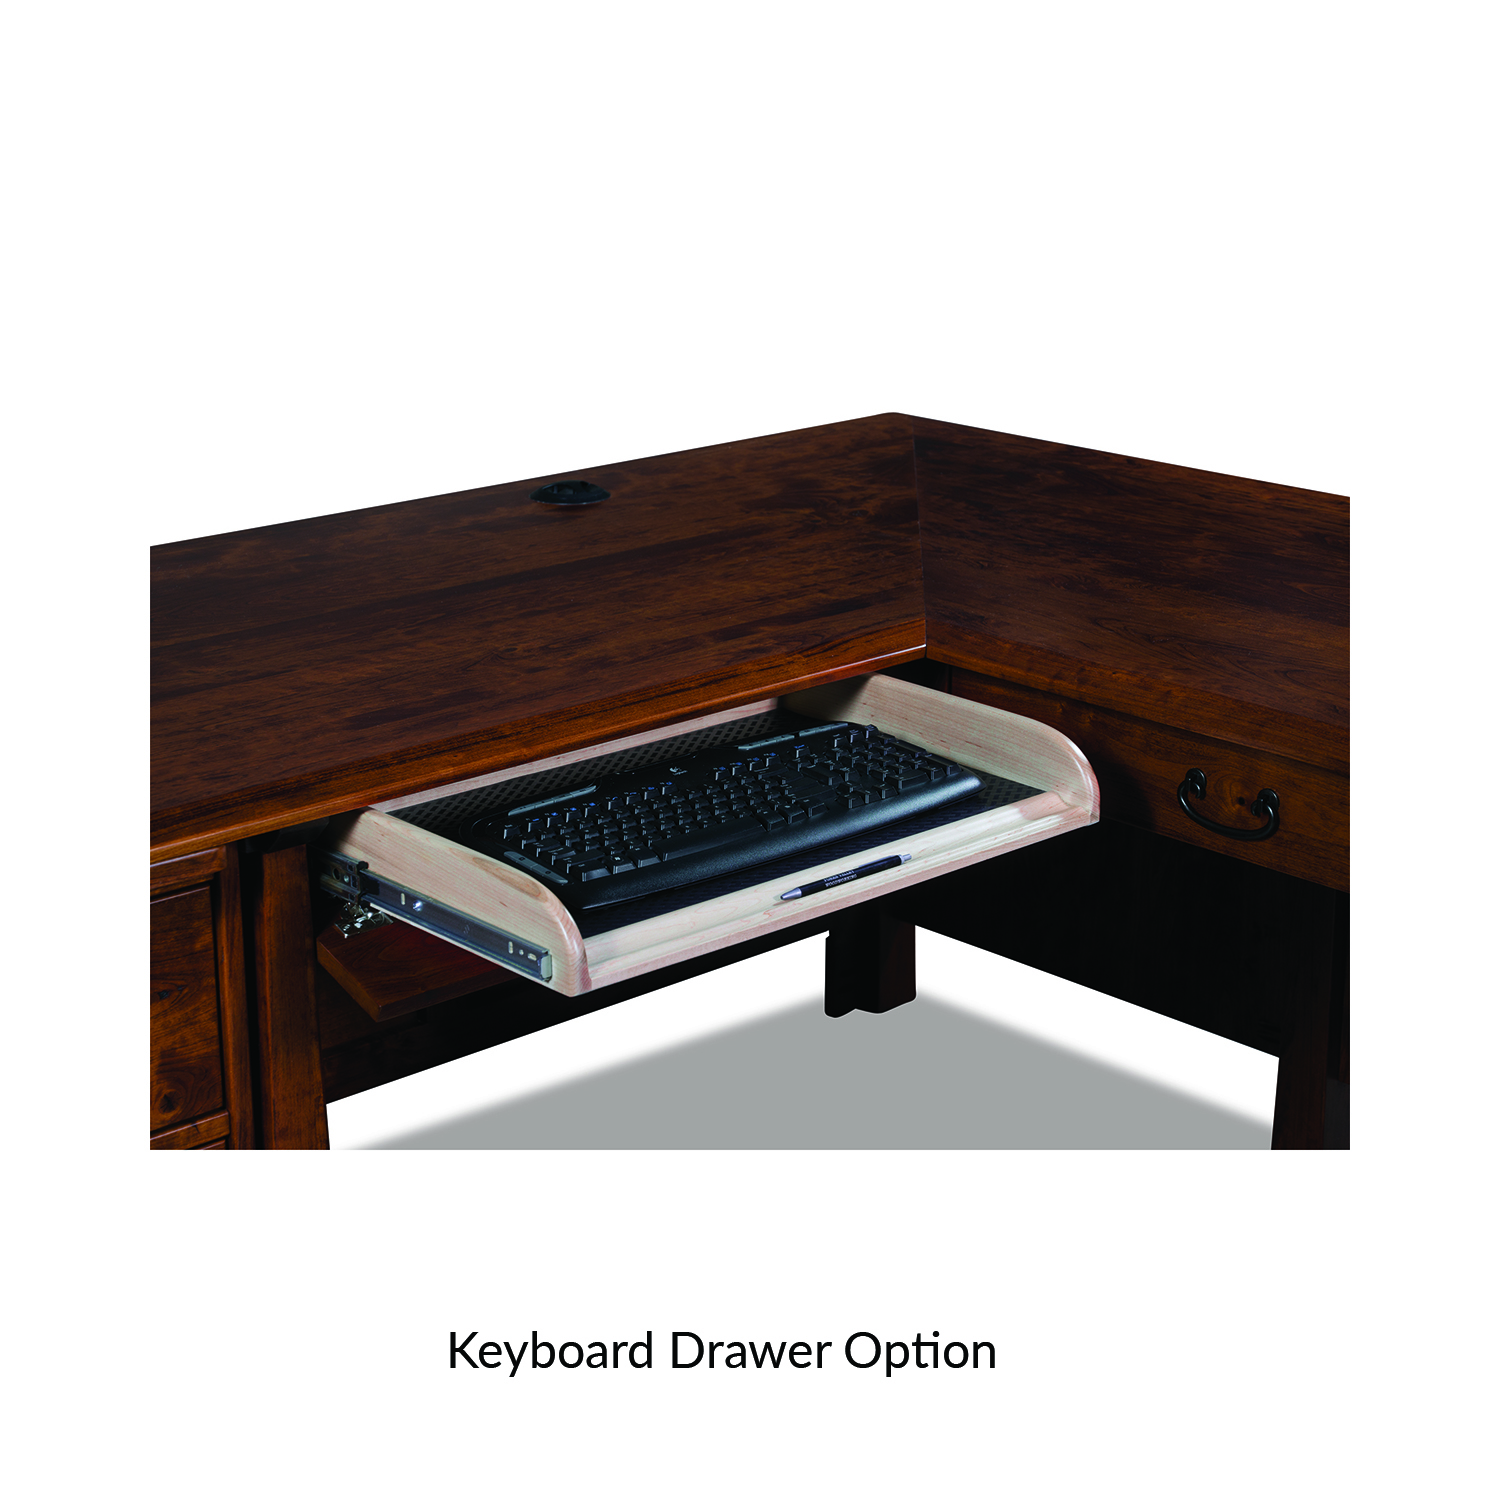 12.1-keyboard-drawer-option.jpg